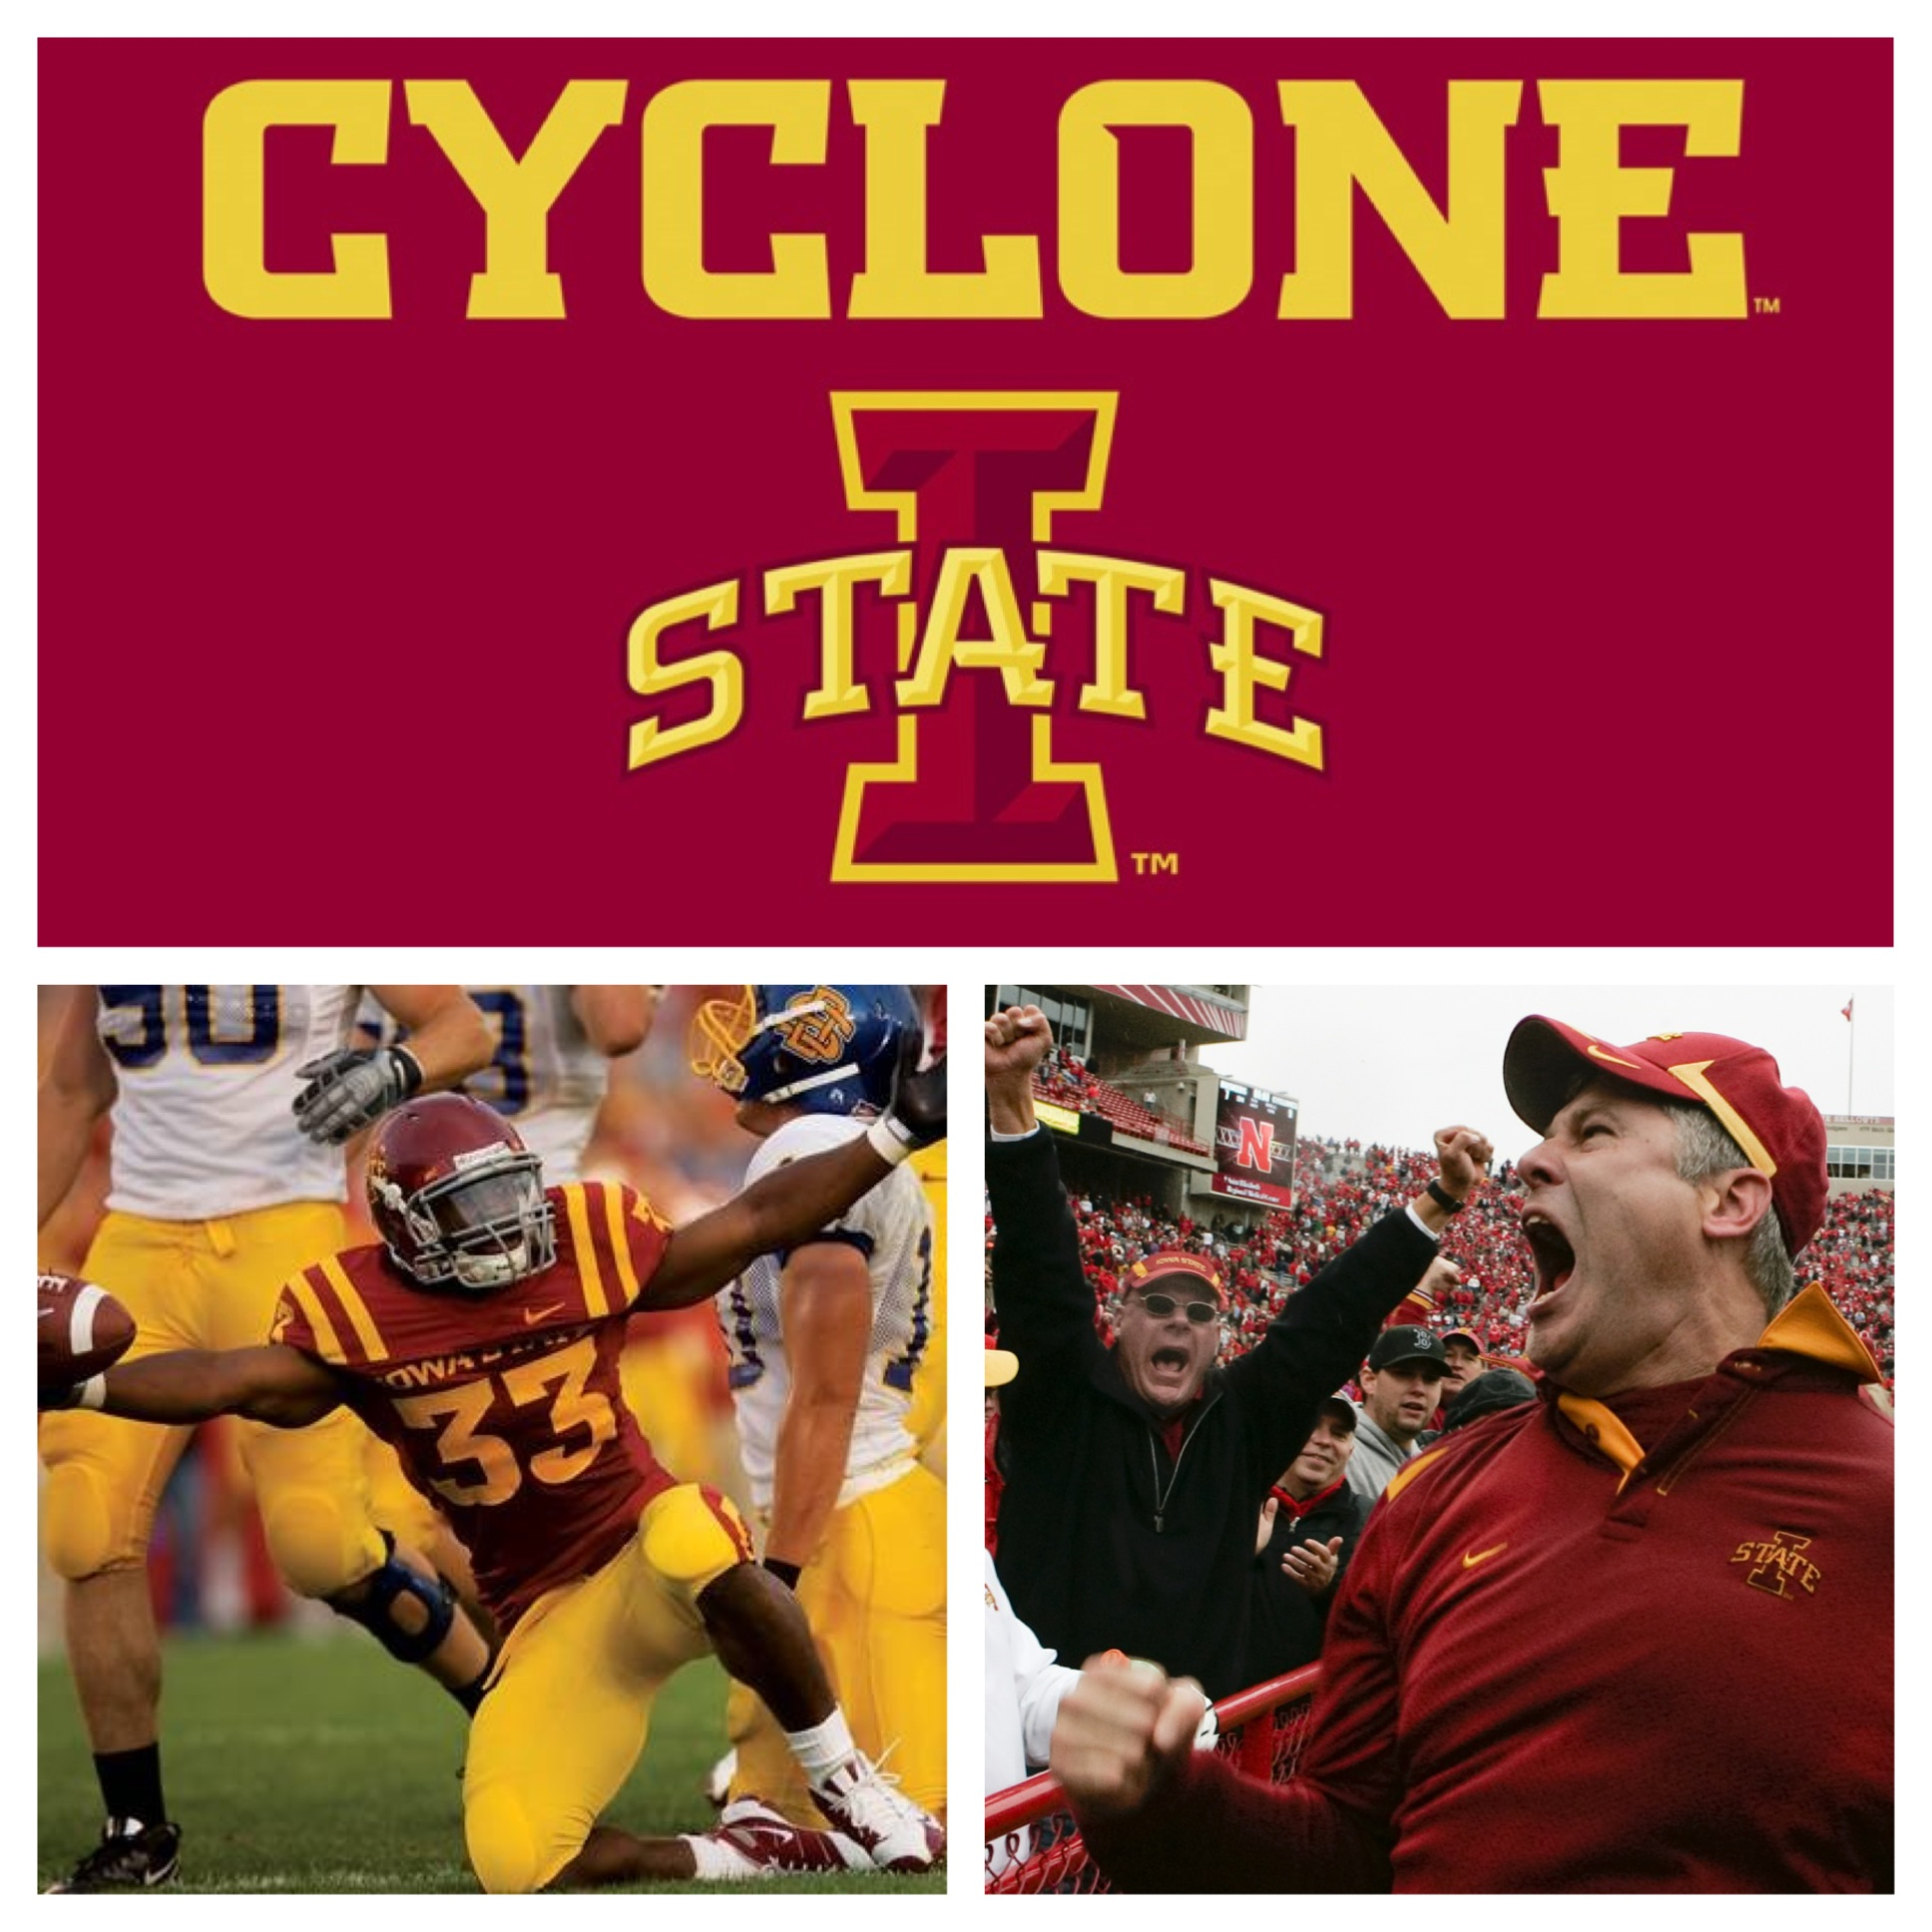 Cyclones-Football-All-Year-Round-Go-Cyclones-wallpaper-wp4004191-1